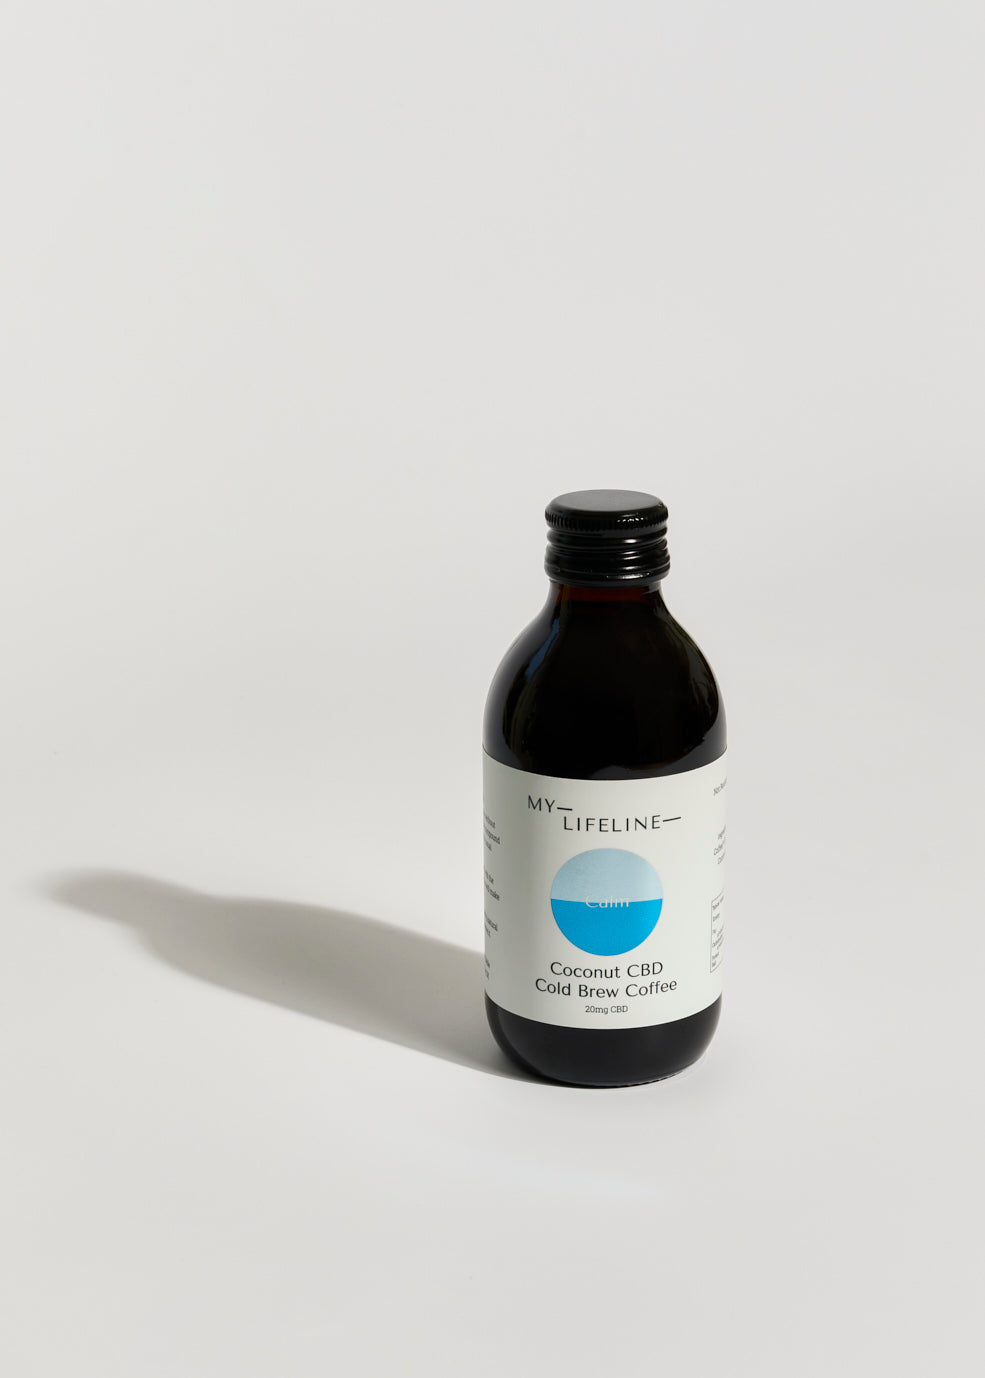 Coconut CBD cold brew coffee